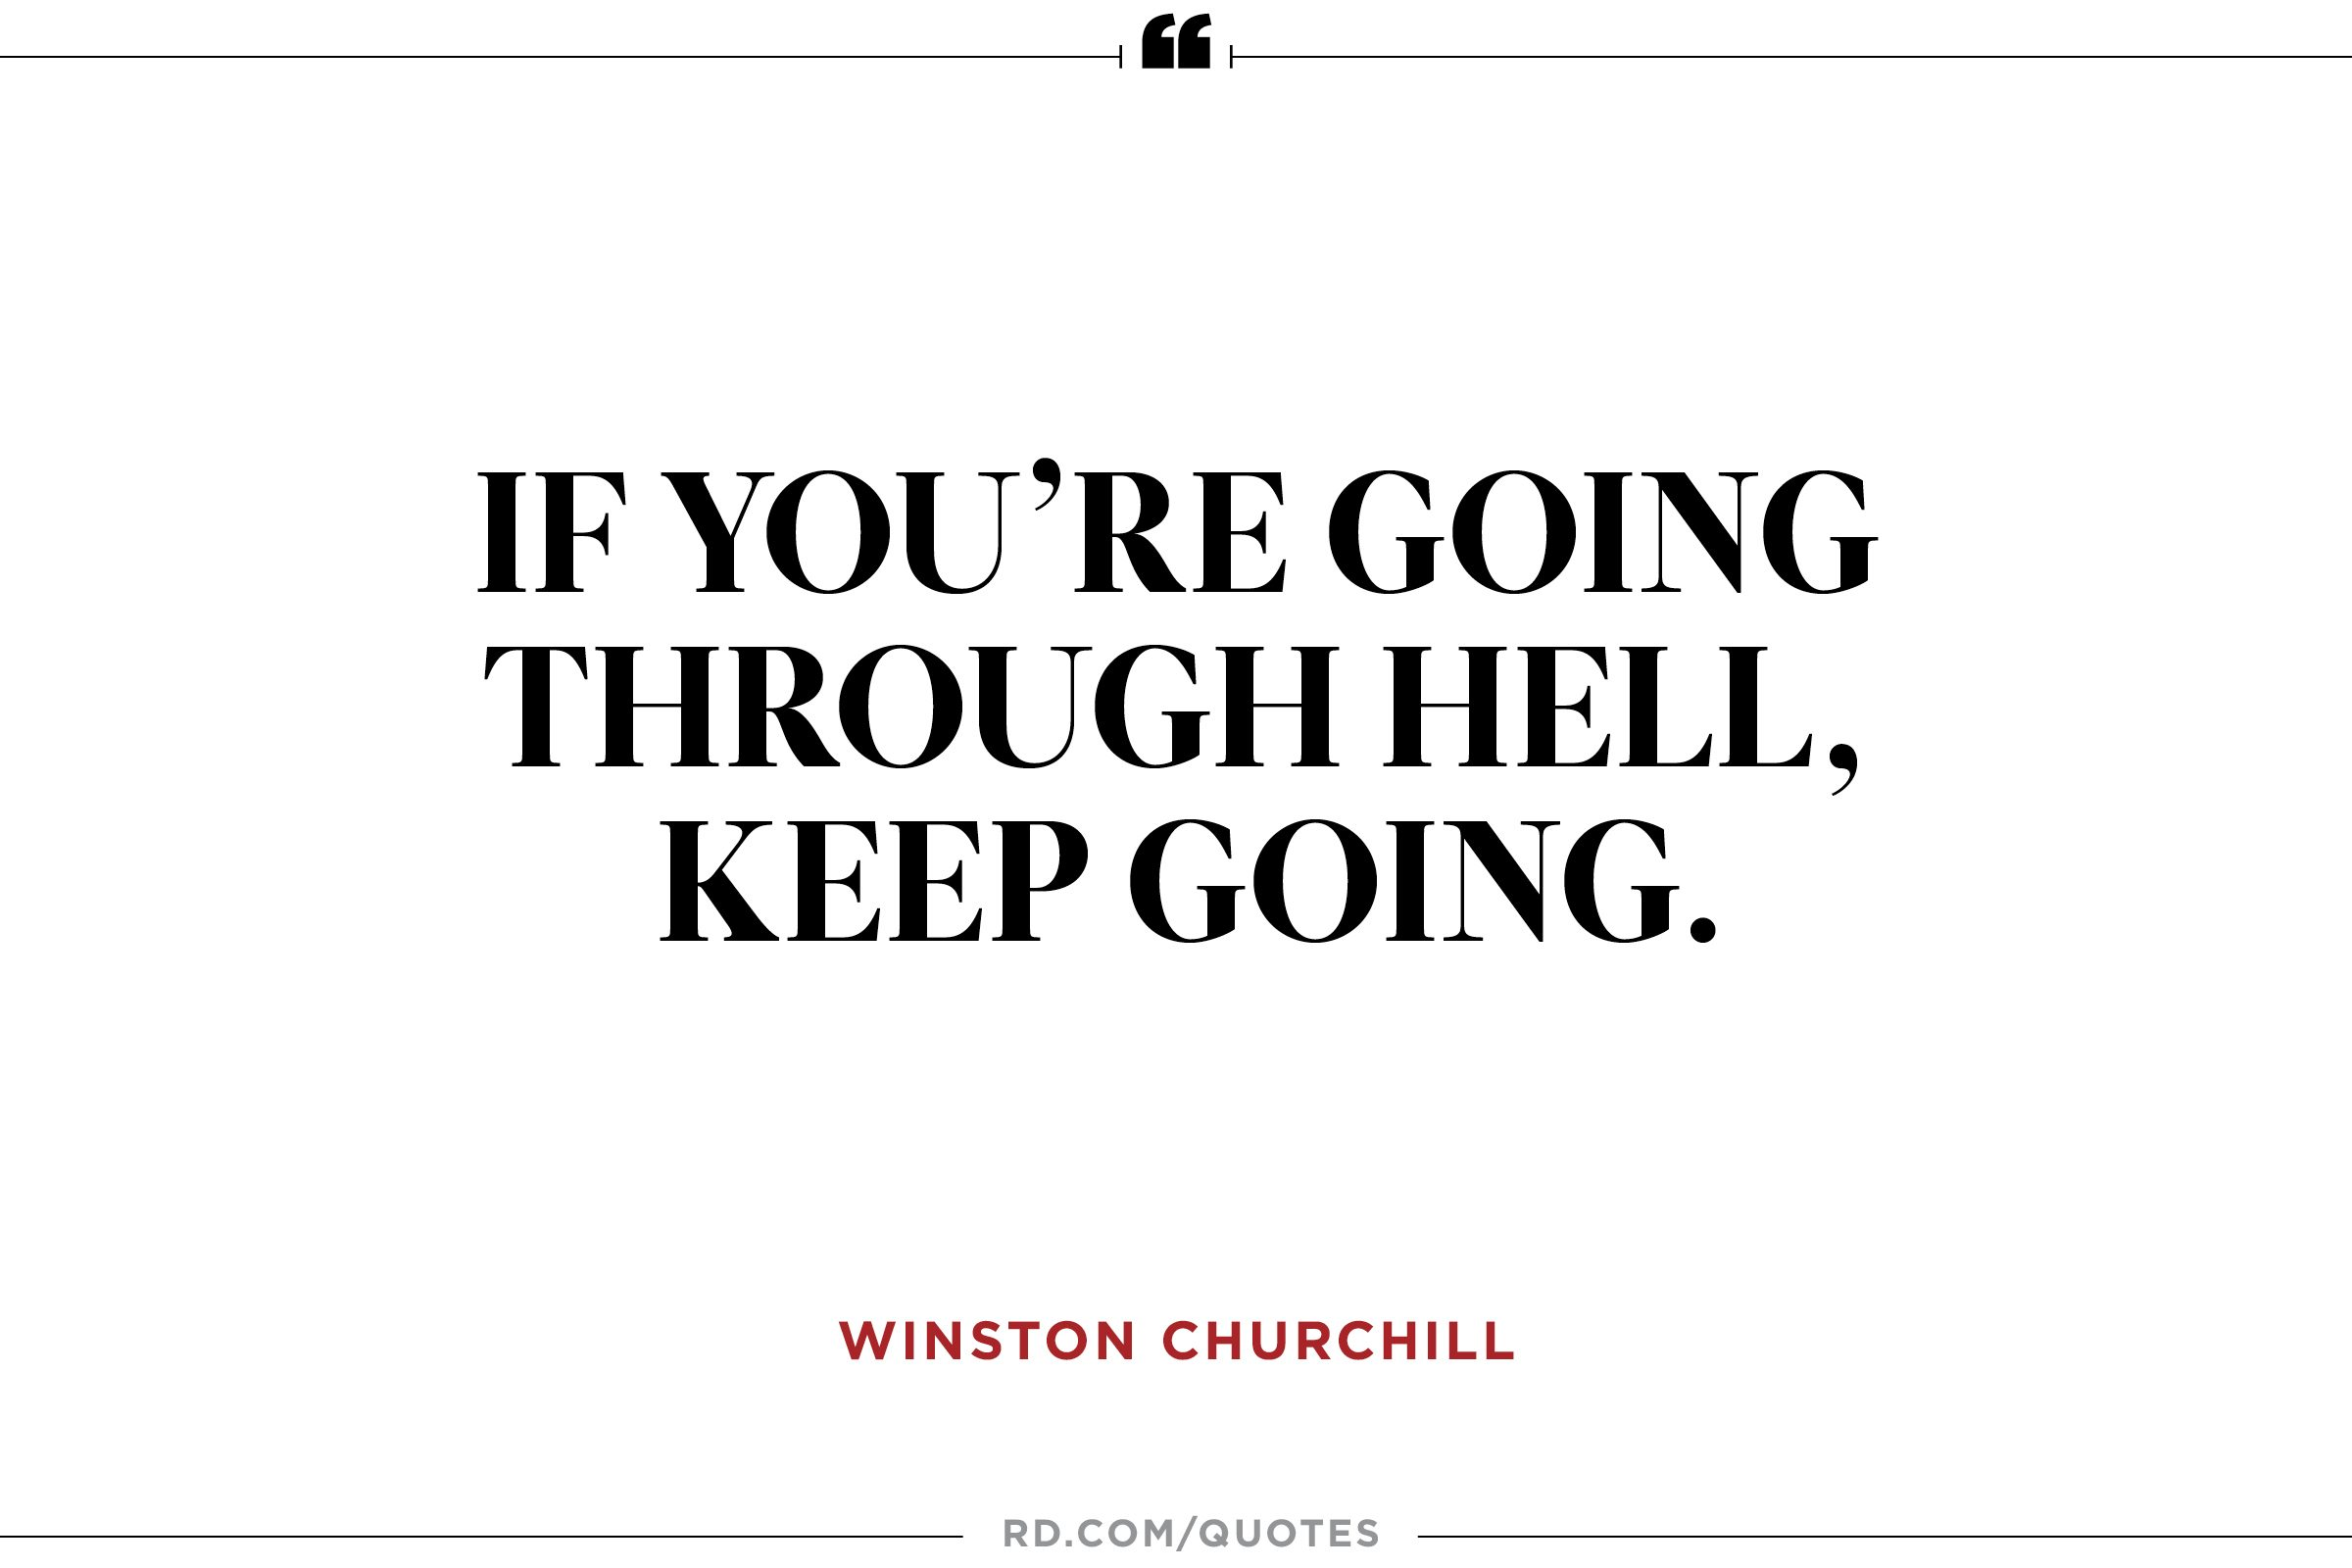 Brake Quotes 10 Winston Churchill Quotes That Get You To The Corner Office